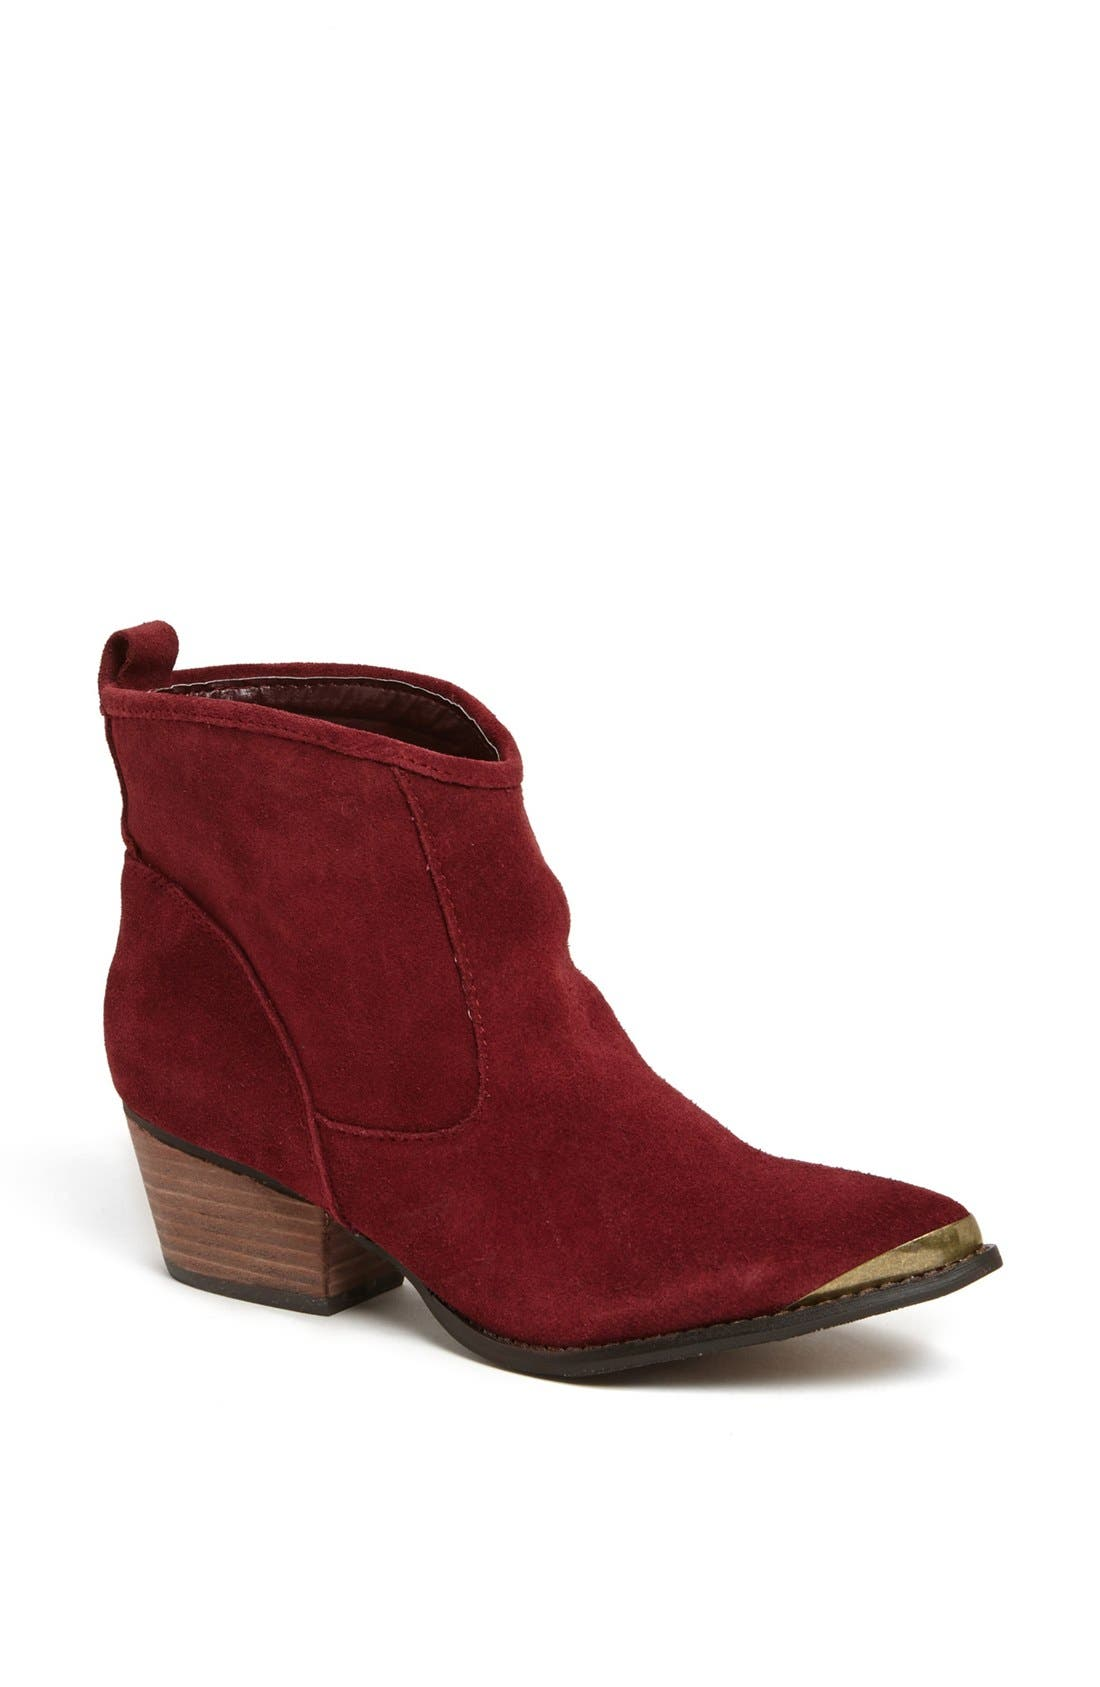 Alternate Image 1 Selected - Chinese Laundry 'Ideal' Bootie